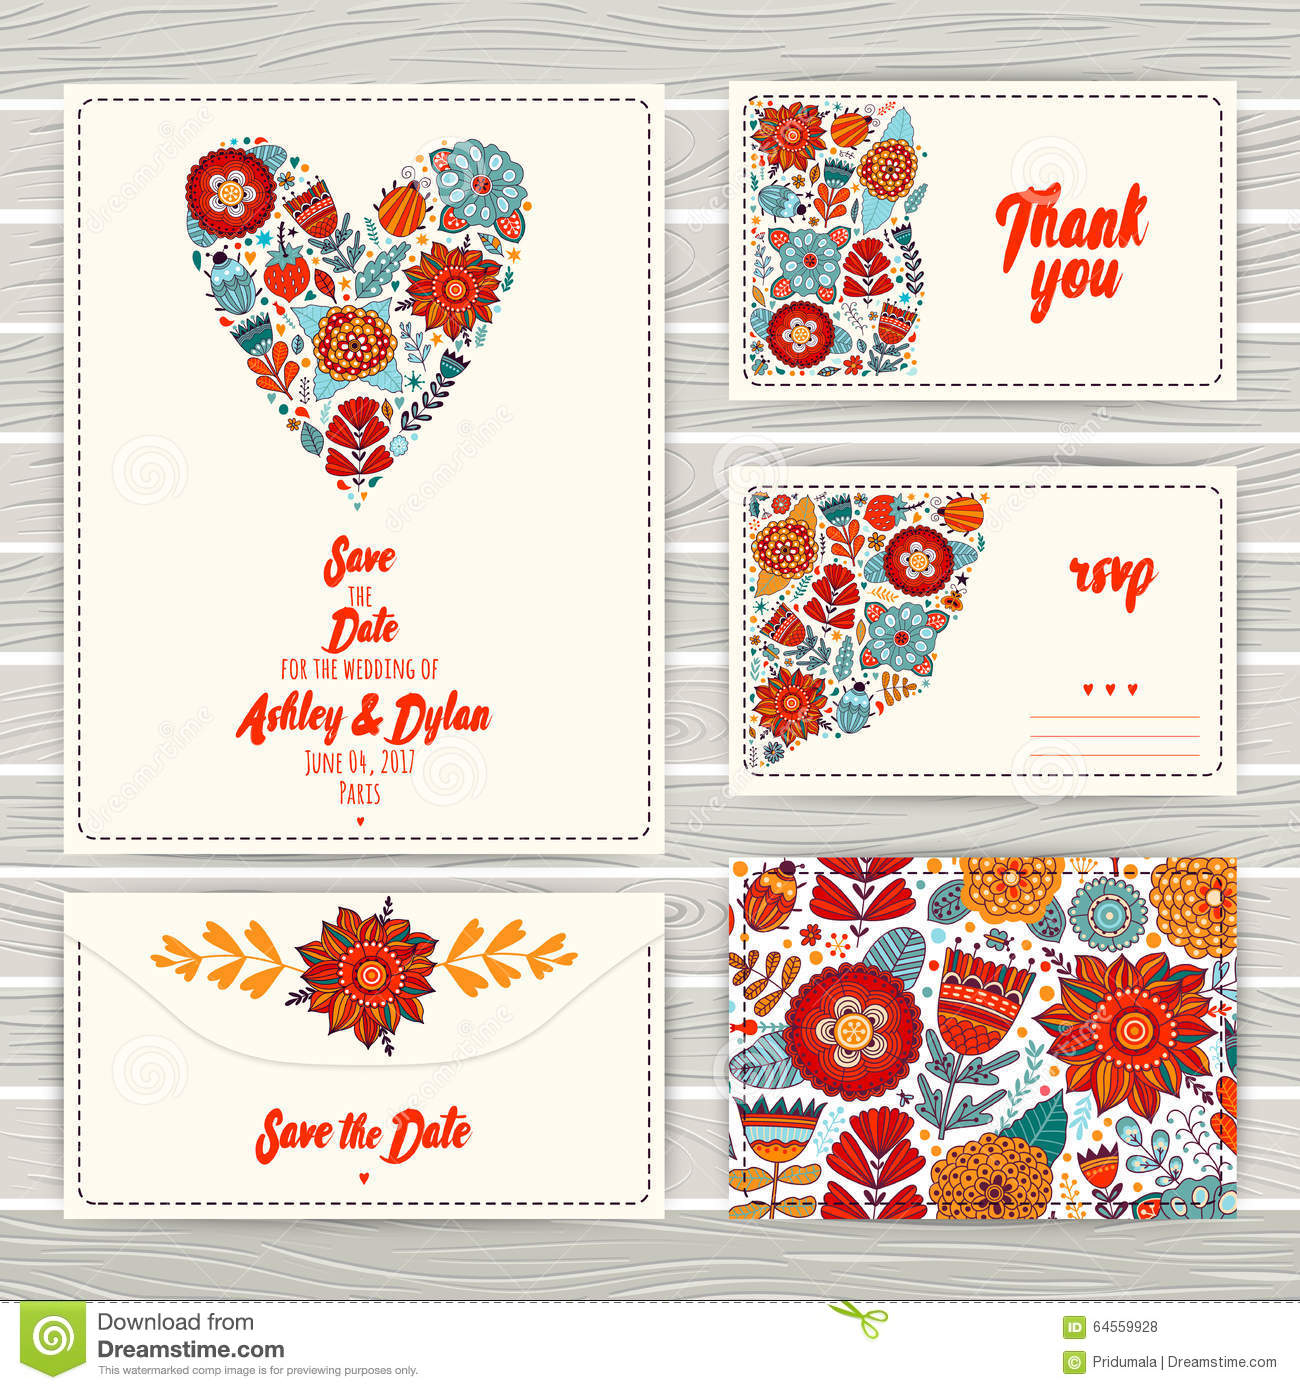 wedding invitation template invitation envelope thank you card